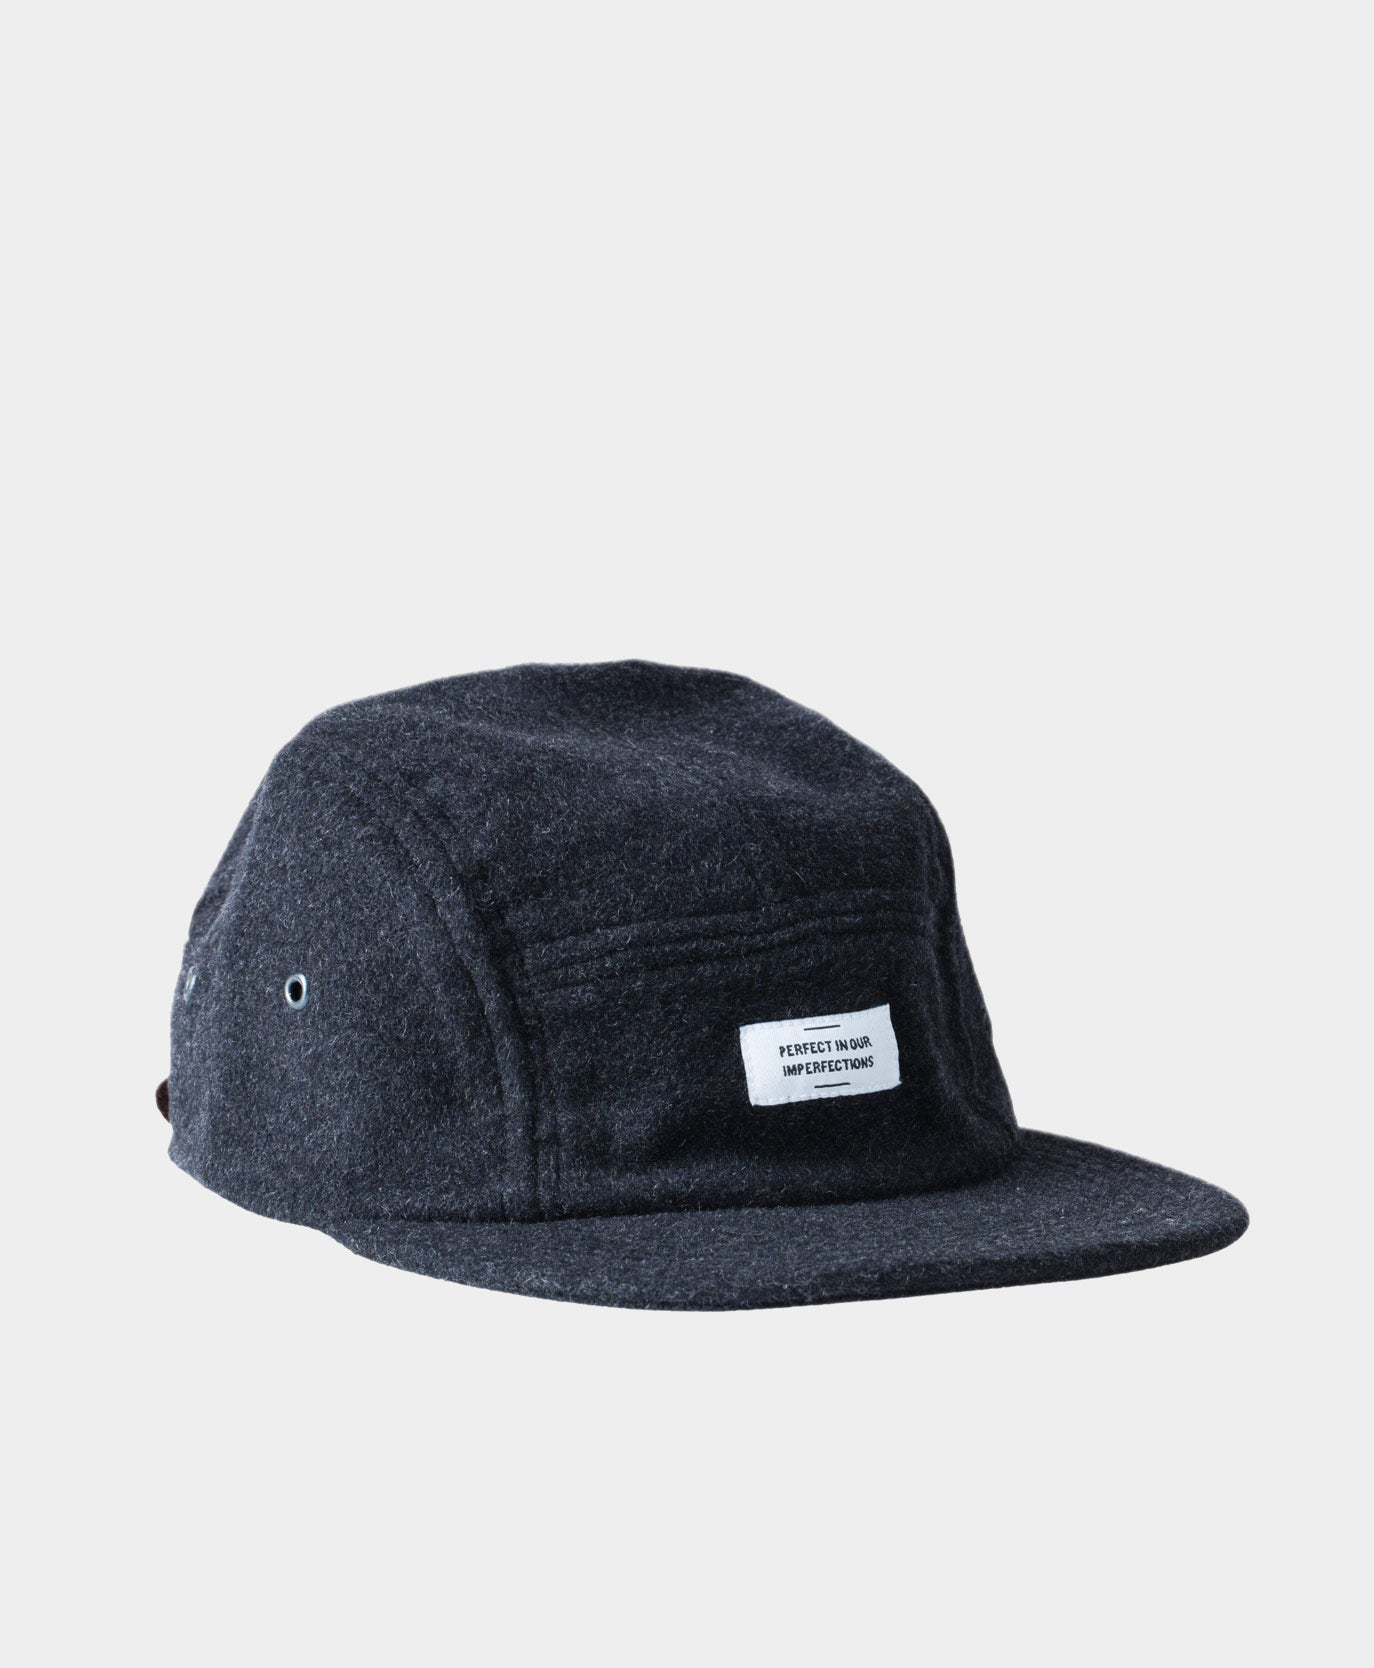 Image of The Black Felt Cap